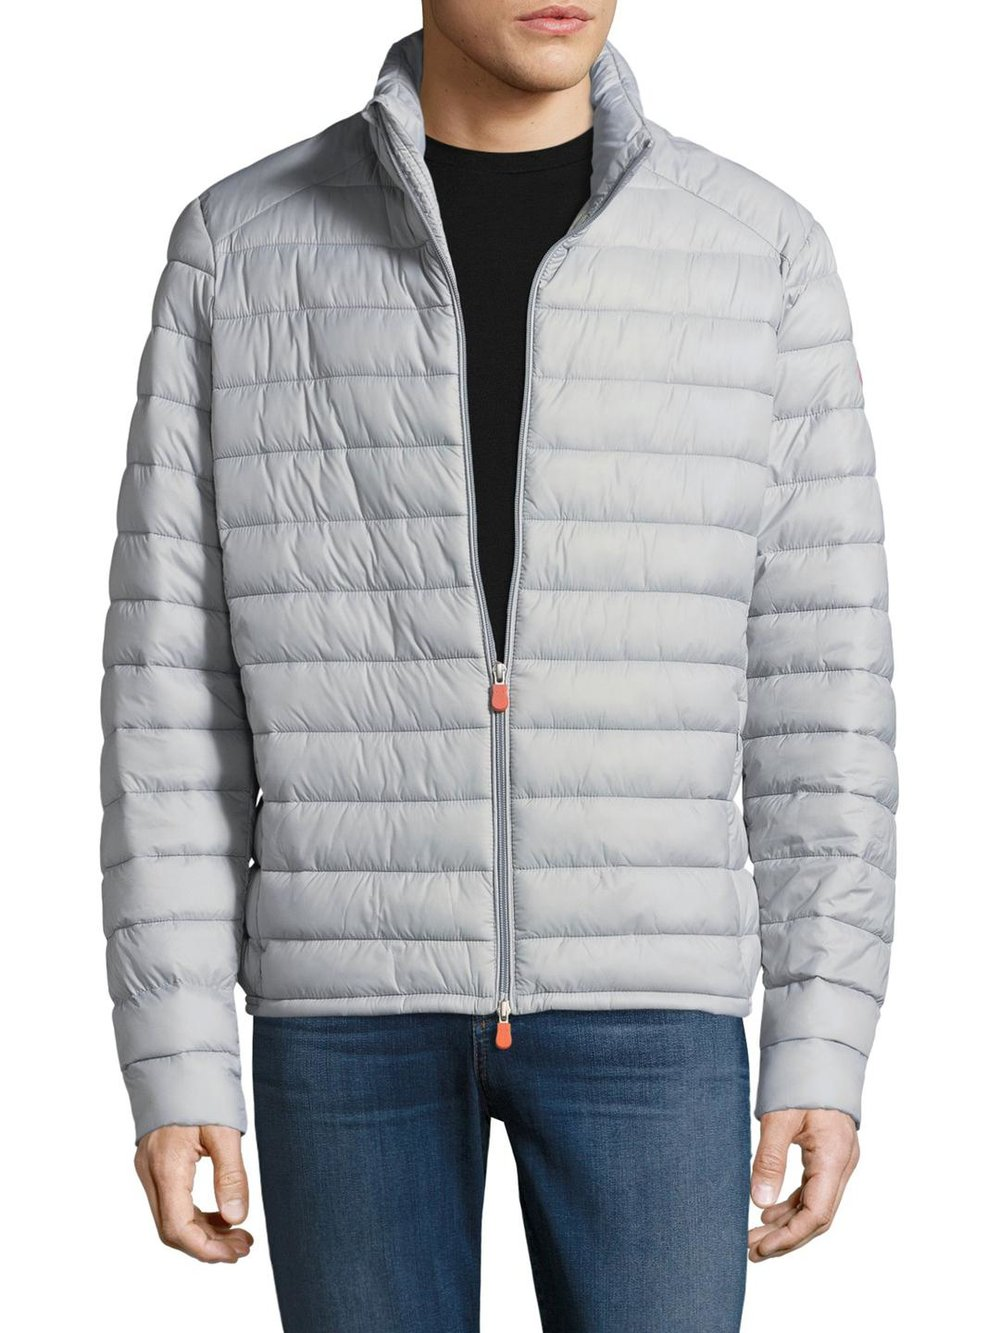 save-the-duck-frost-grey-Non-Hooded-Puffer-Jacket.jpg